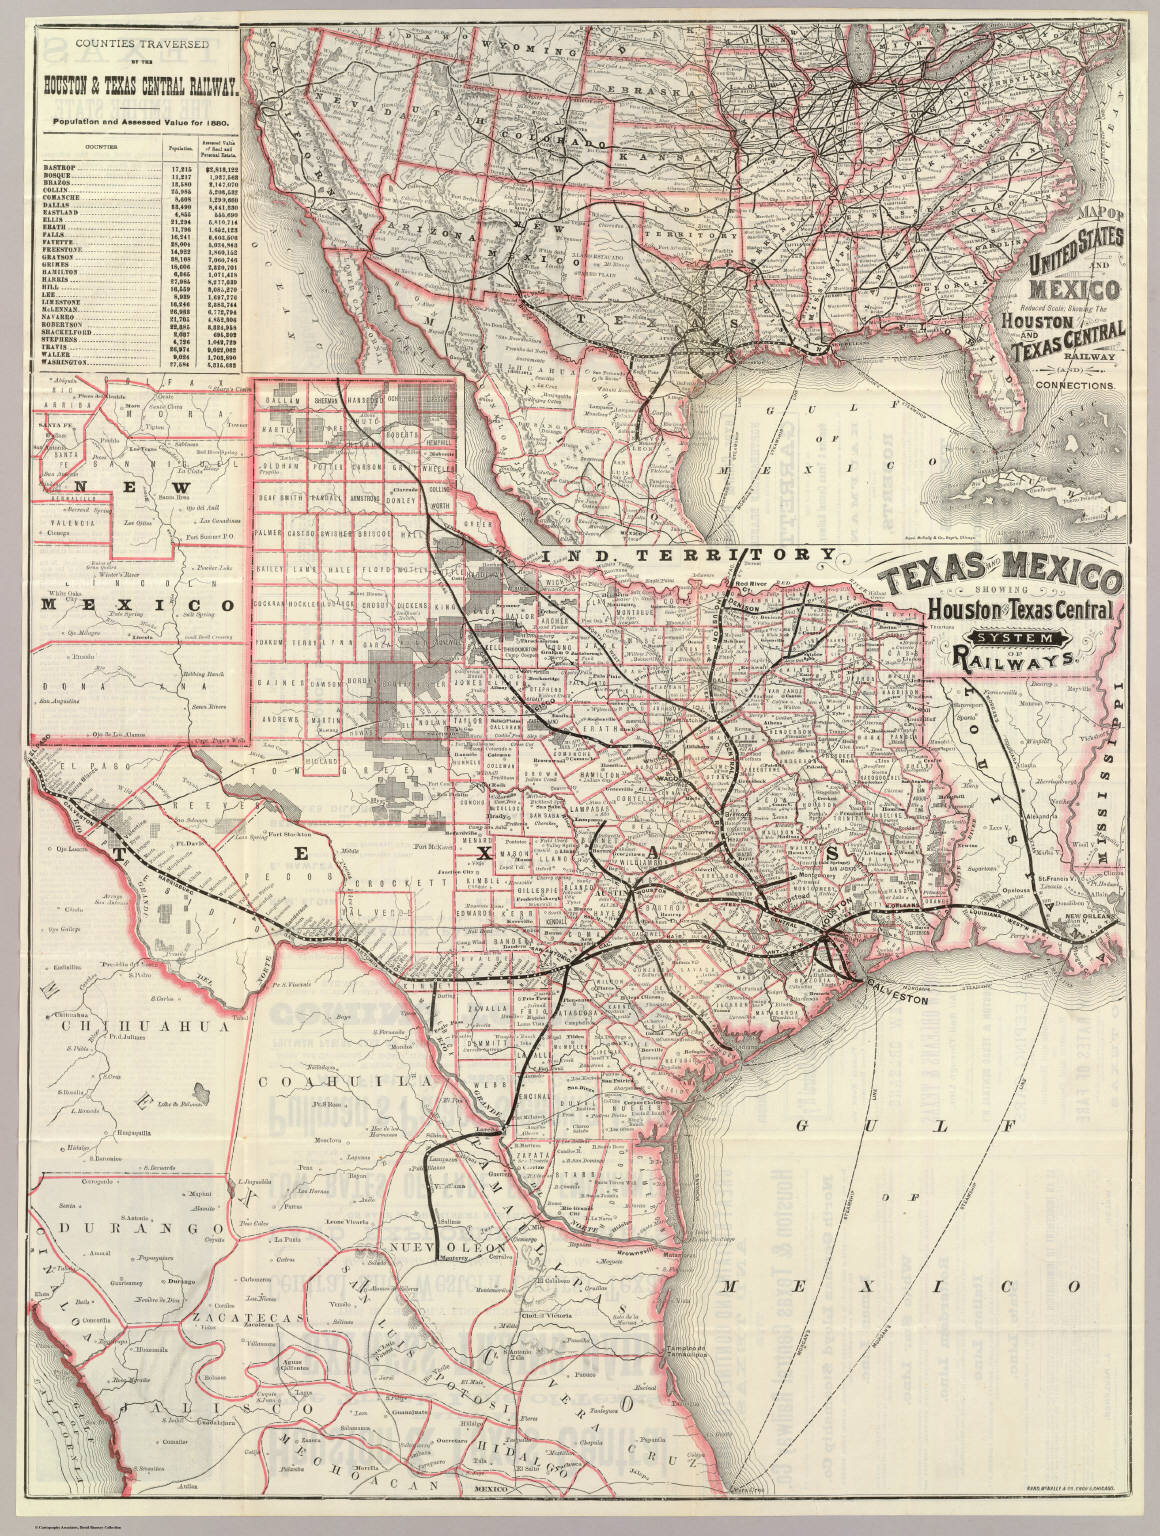 Texas And Mexico Houston And Texas Central Railways David - Map of central texas